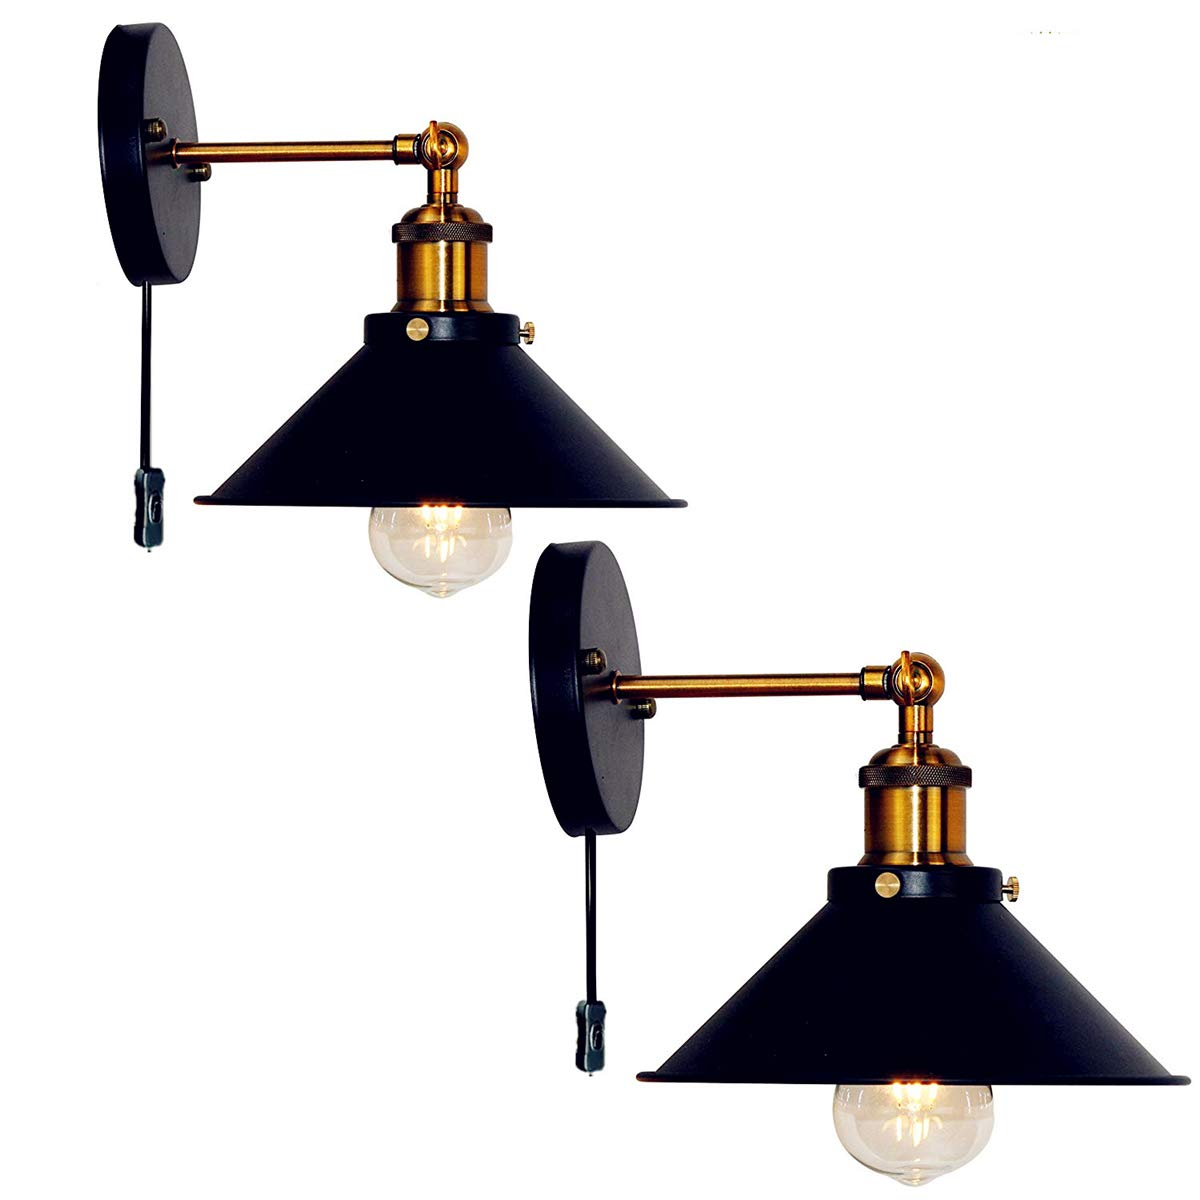 Retro Wall Sconces Light Wall Lamp Plug In Cord With On Off Switch E26 Base Black Wall Industrial Vintage Edison Lamp Fixture Steel Finished for Indoors Bedroom (Plug in cord X2 Sets)